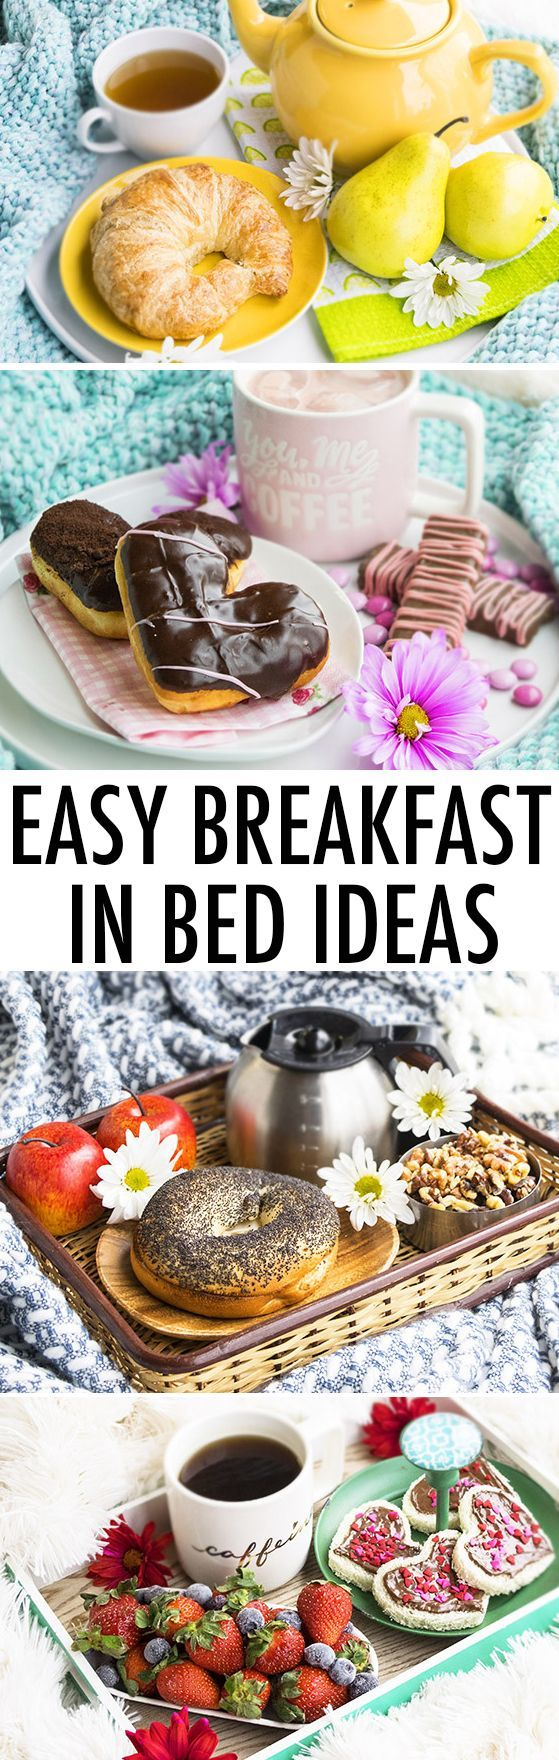 These quick and easy BREAKFAST IN BED IDEAS for Valentine's Day, Mother's Day or Anniversaries are romantic, fun and require simple food items and supplies. {Ad} From cakewhiz.com